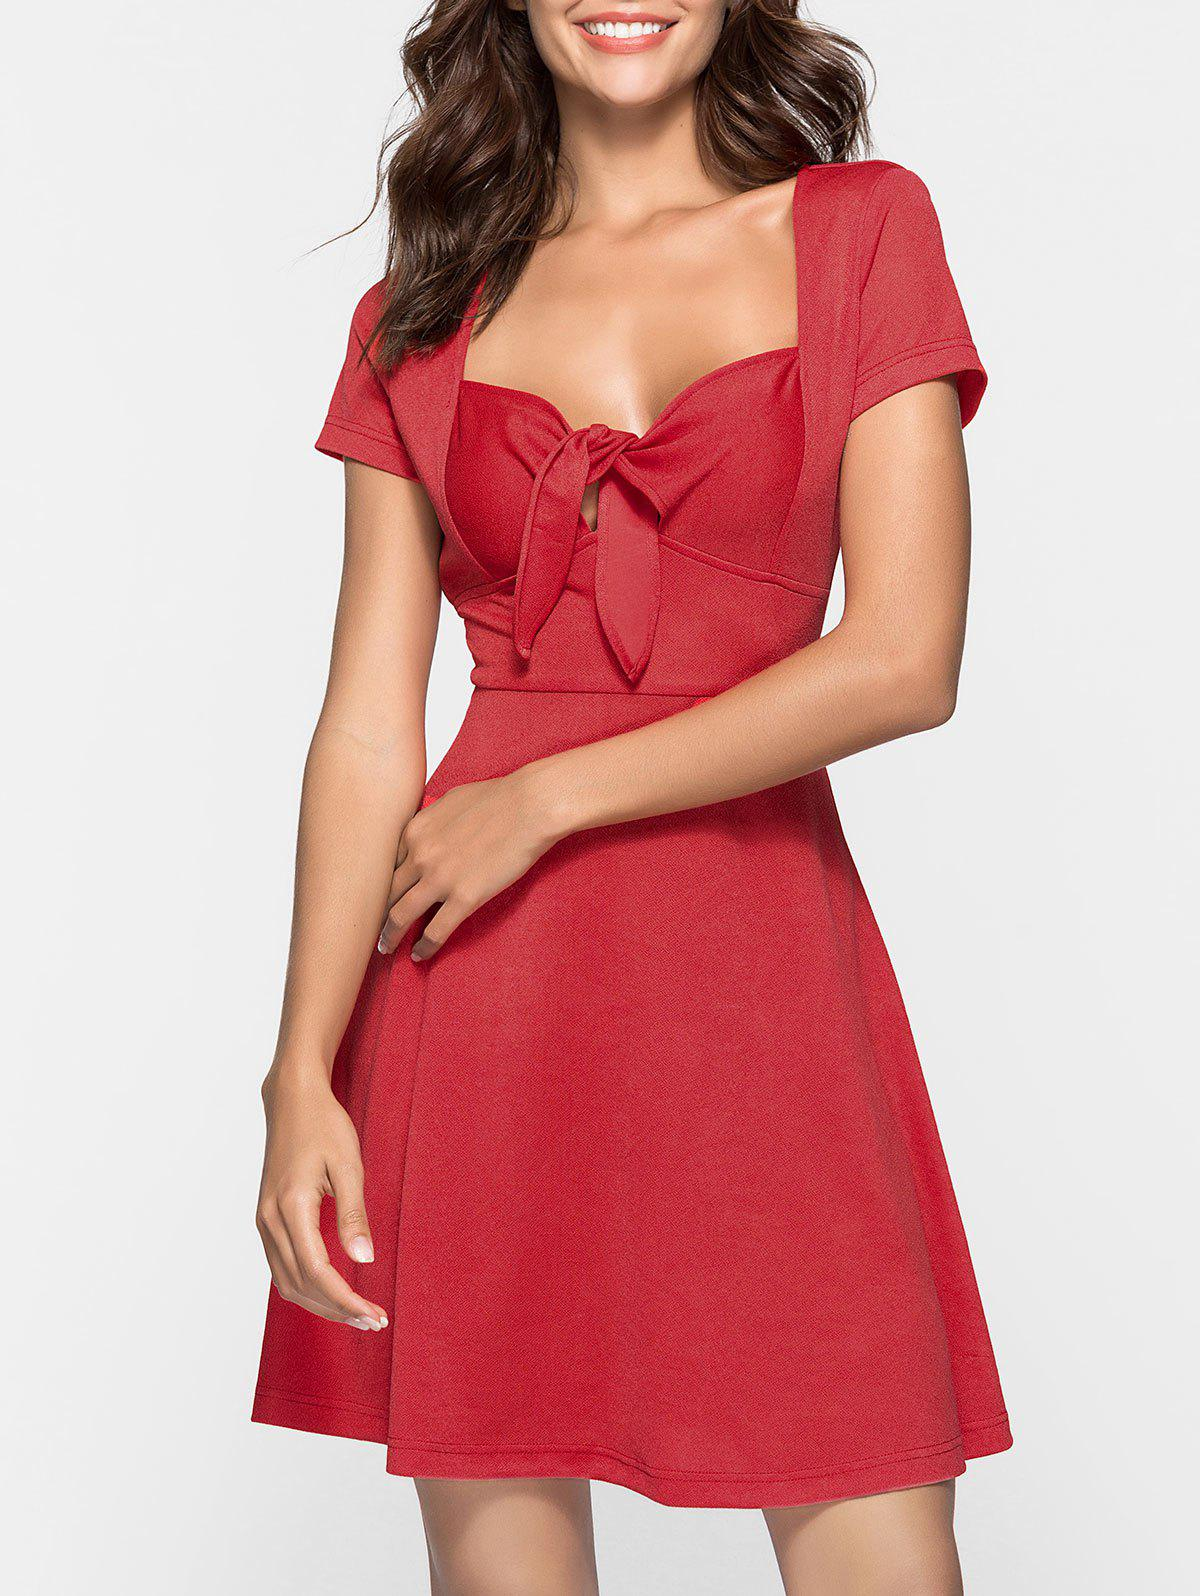 Sweetheart Neck Skater Dress - RED S